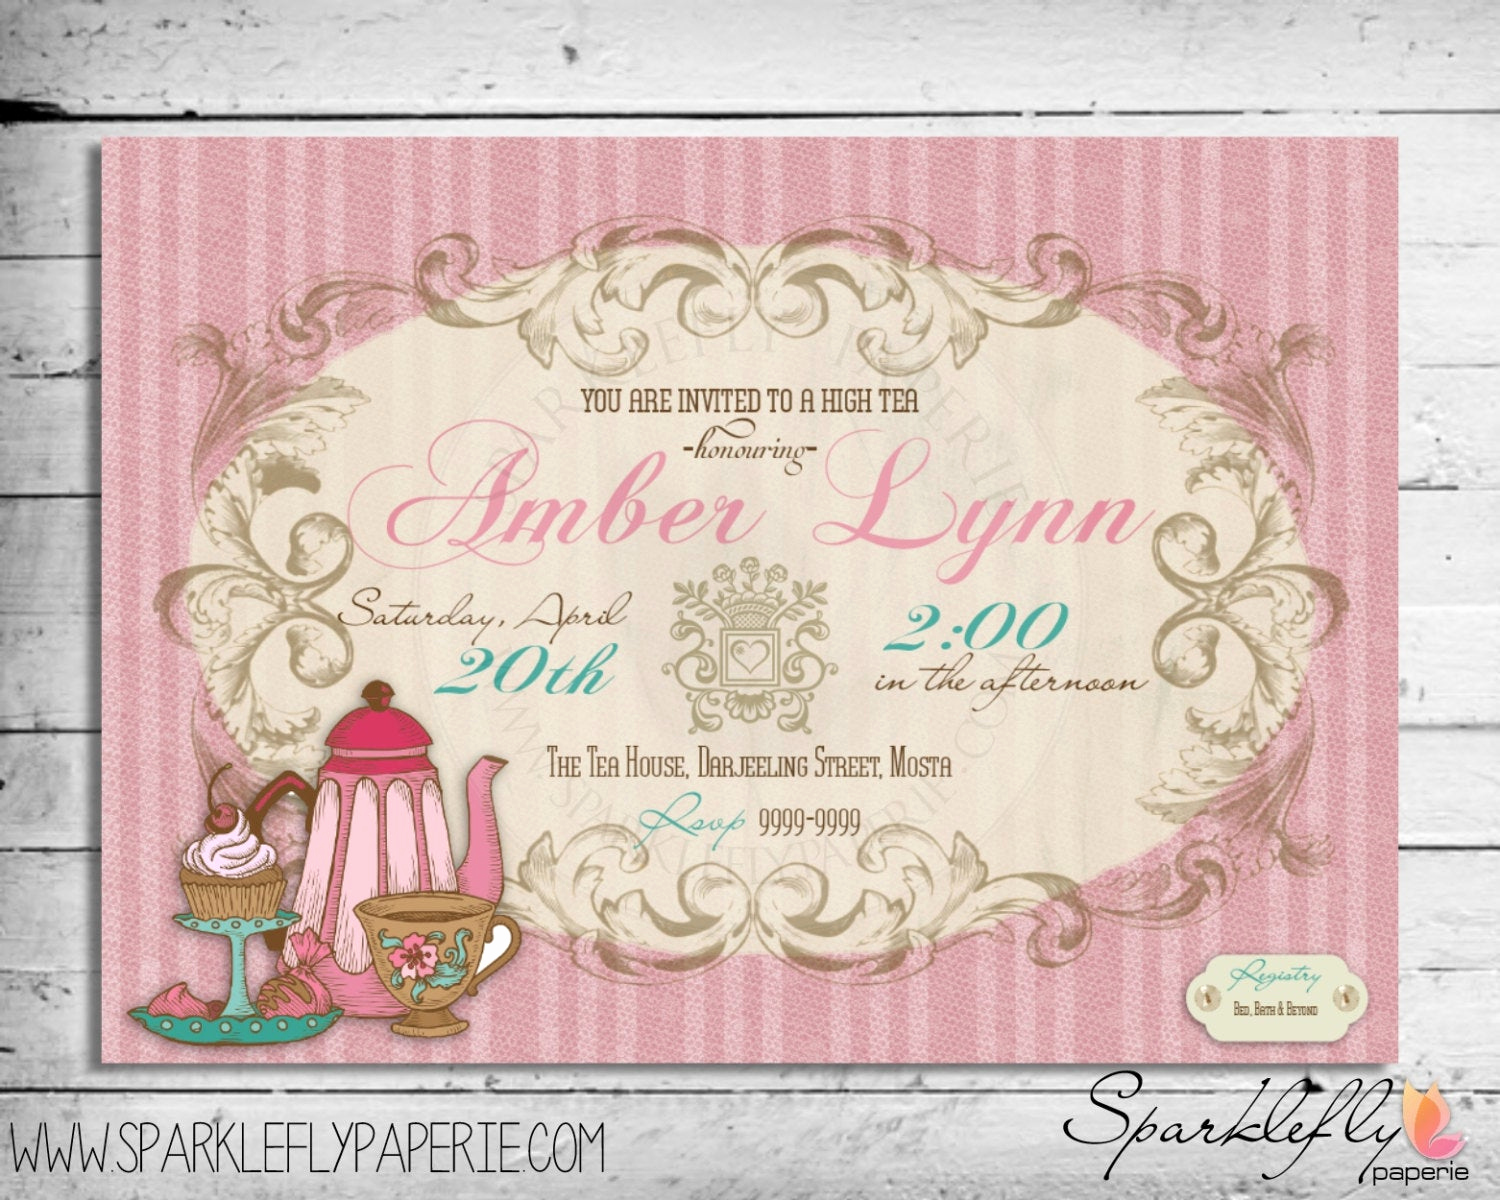 Tea Party Invitation Wording Luxury Vintage High Tea Party Invitation Bridal by Sparkleflypaperie